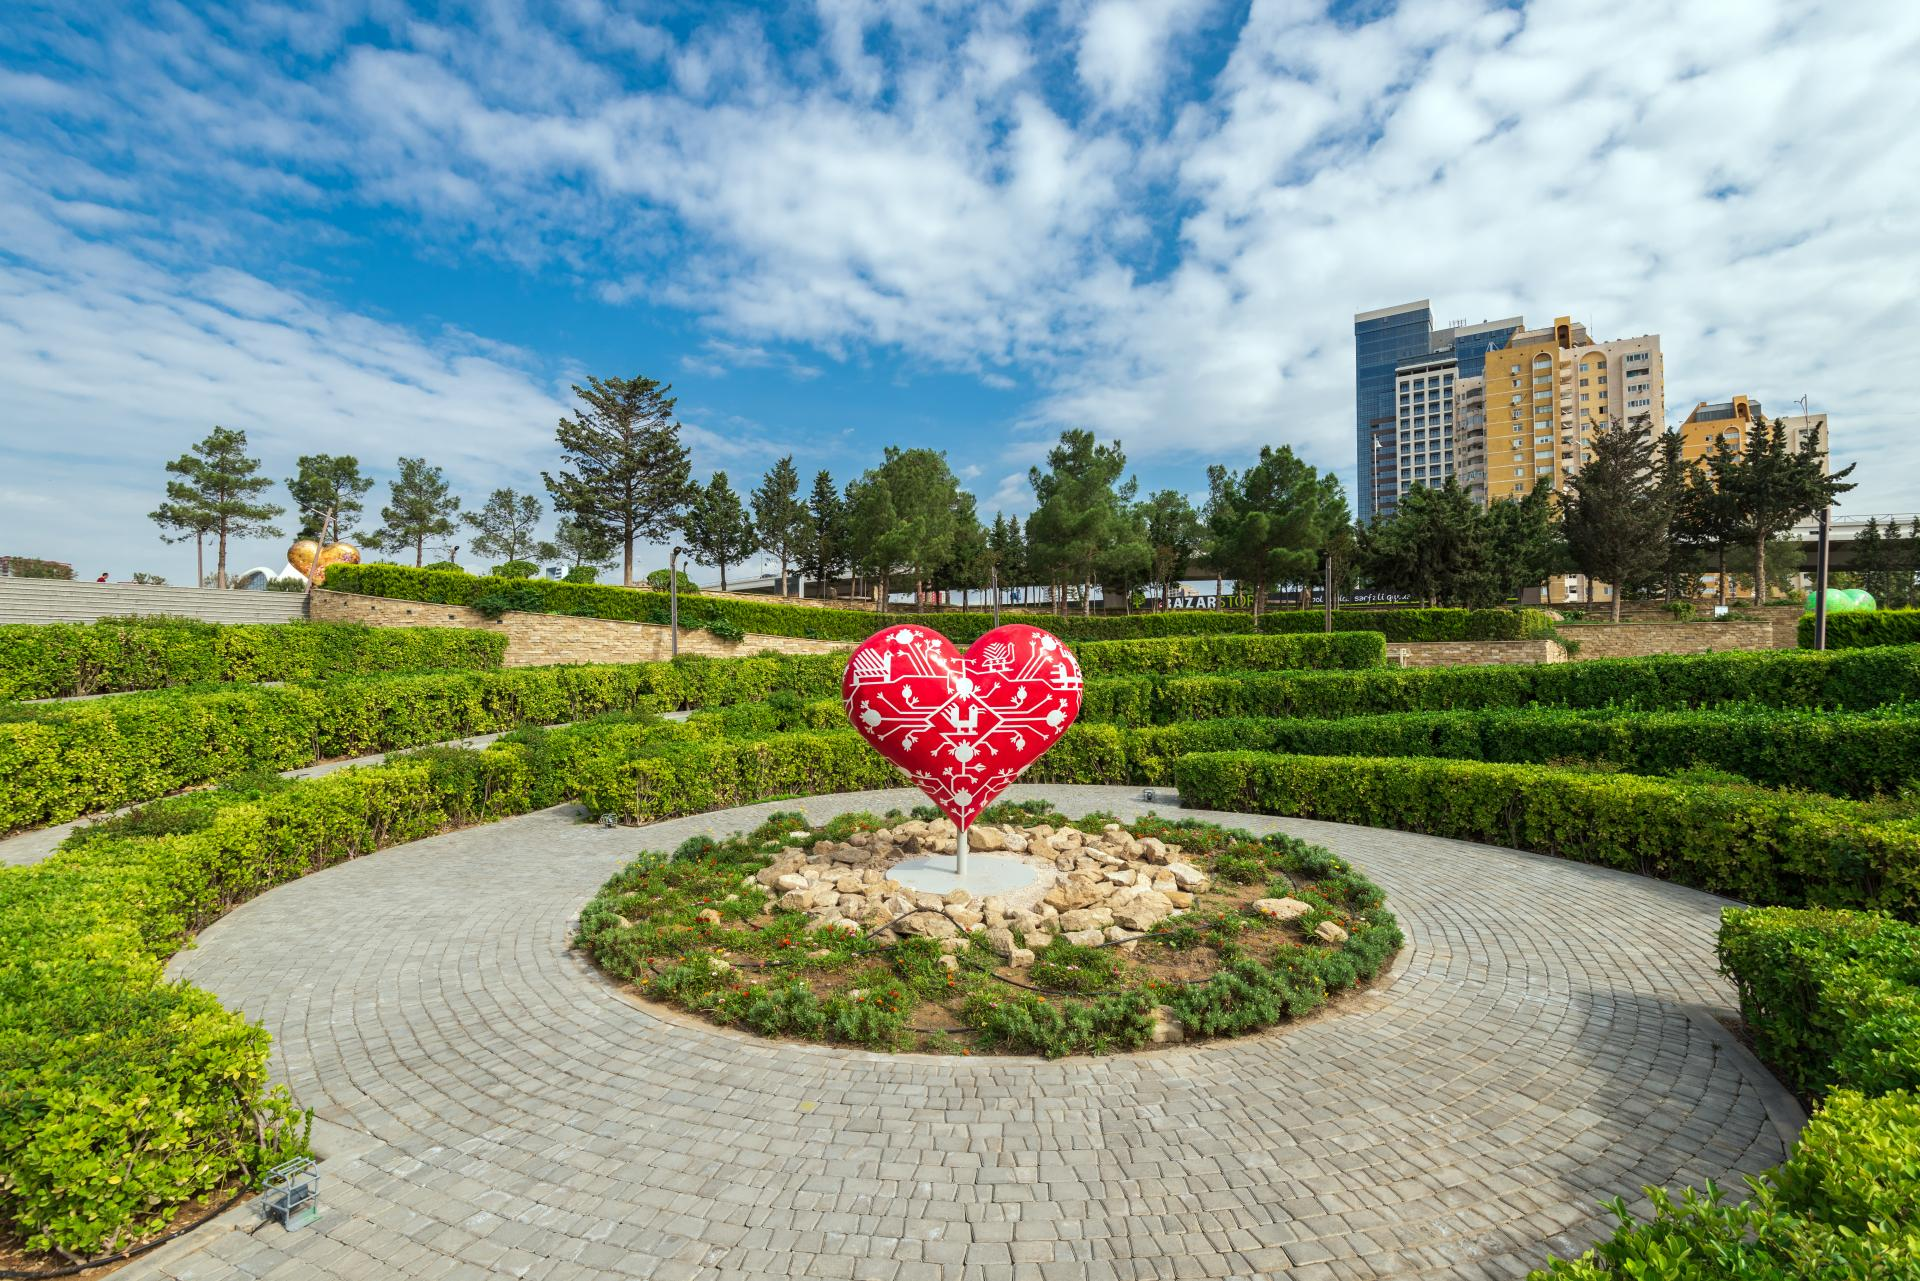 Azerbaijan_Baku _Love You Park_copyright_tourismboard.az